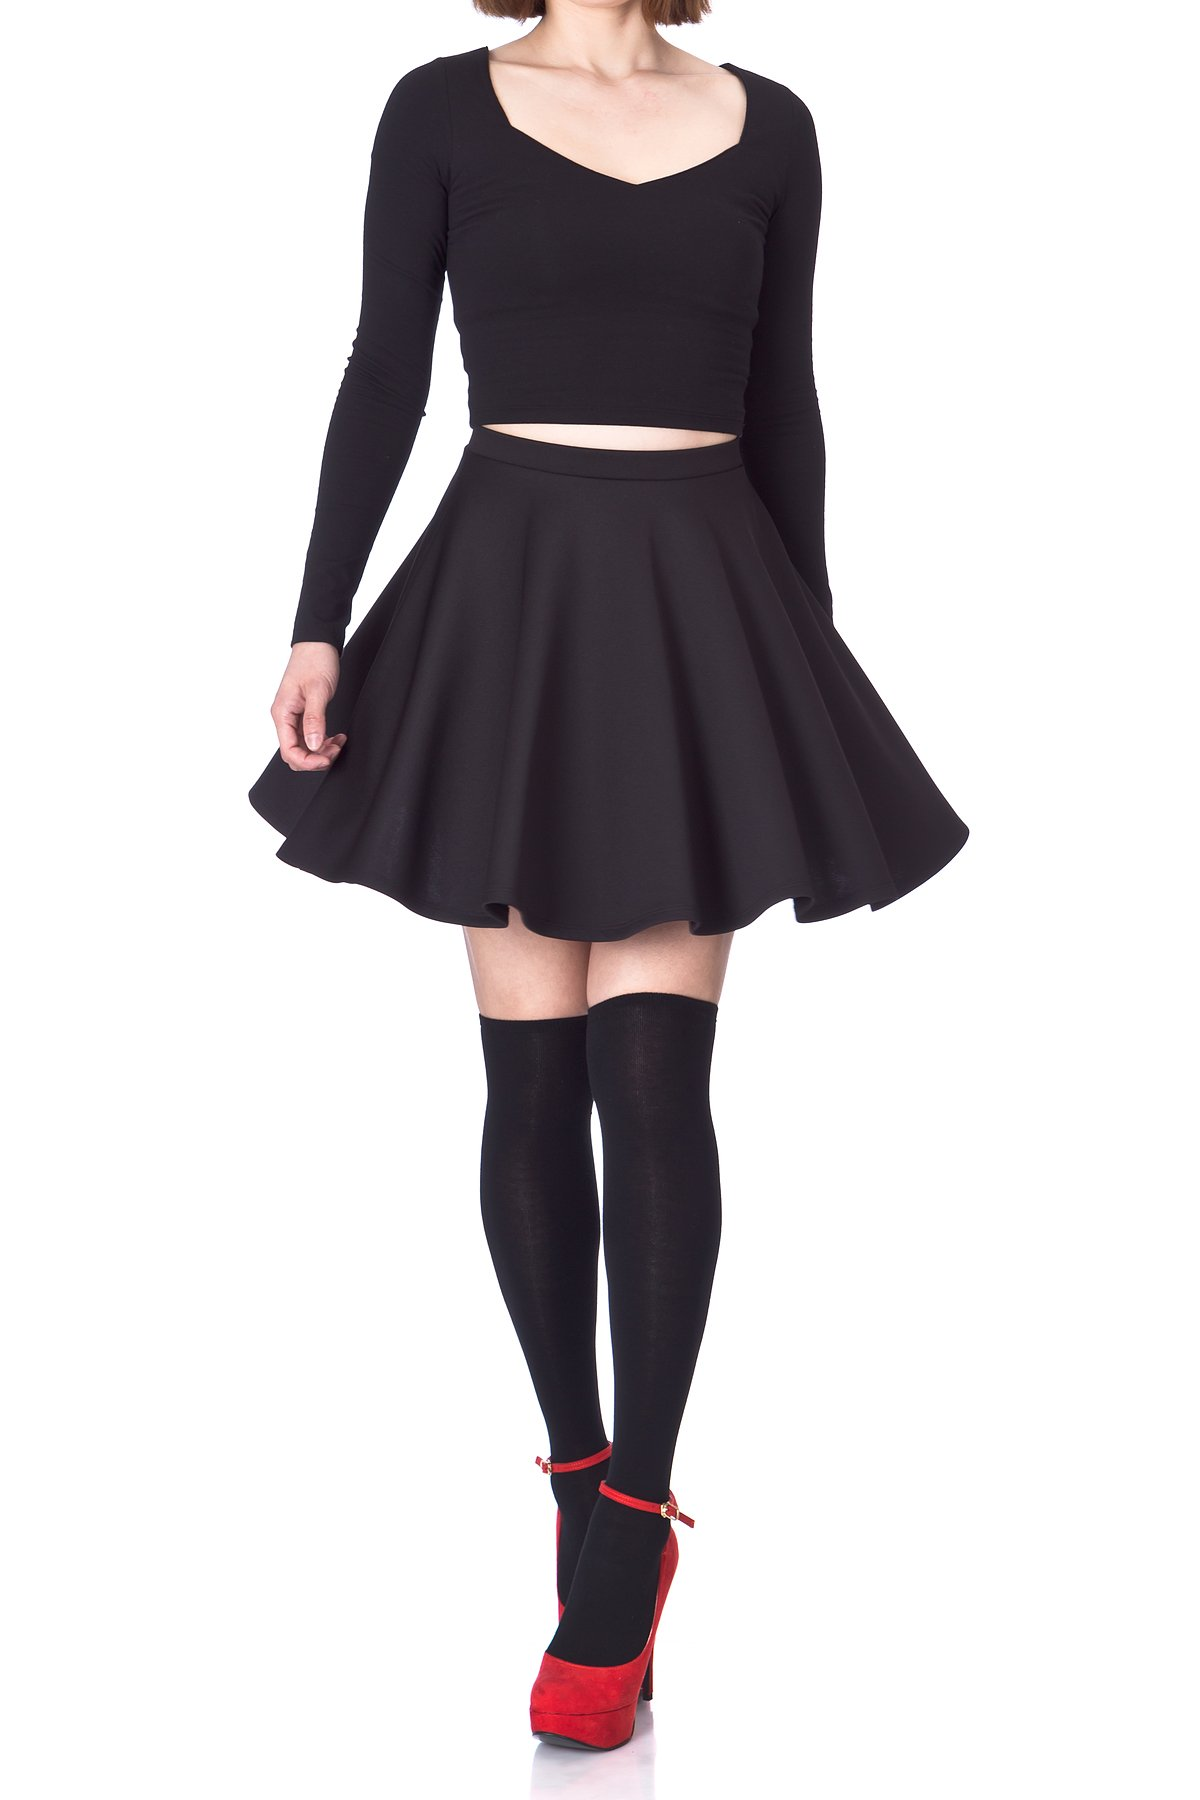 Flouncy High Waist A line Full Flared Circle Swing Dance Party Casual Skater Short Mini Skirt Black 01 1